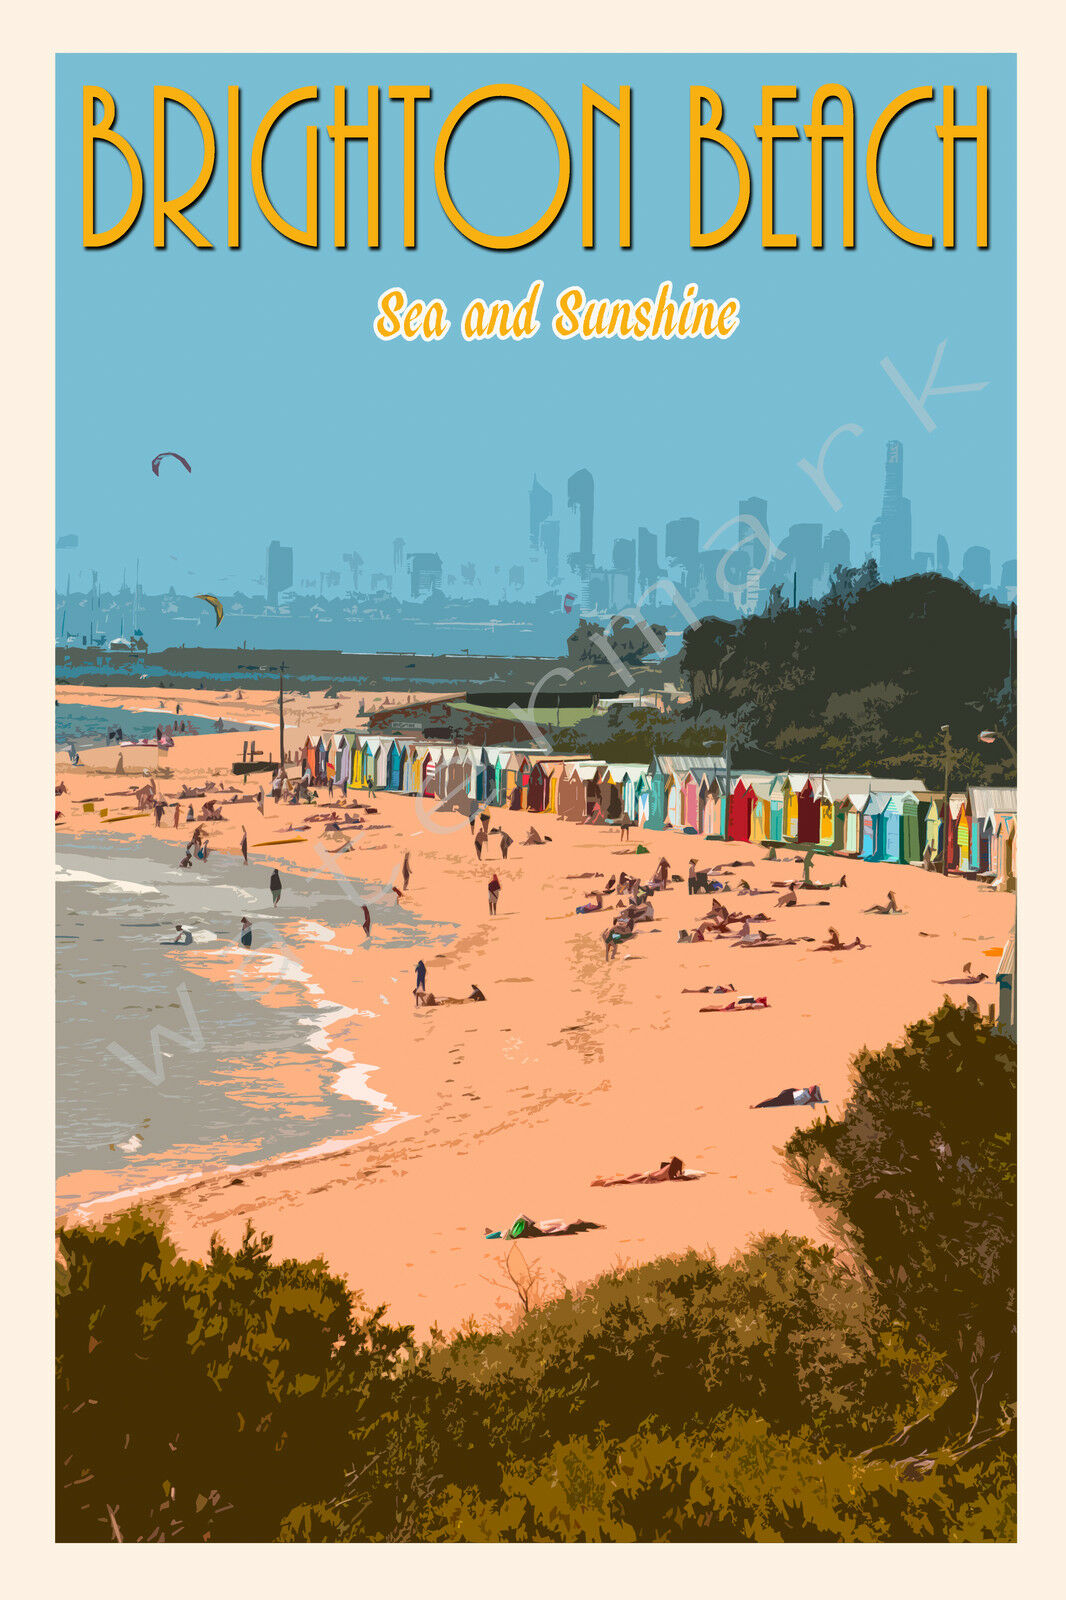 Iconic Brighton Beach Scenic Travel Print. Limited Edition of 250 Signed Artwork